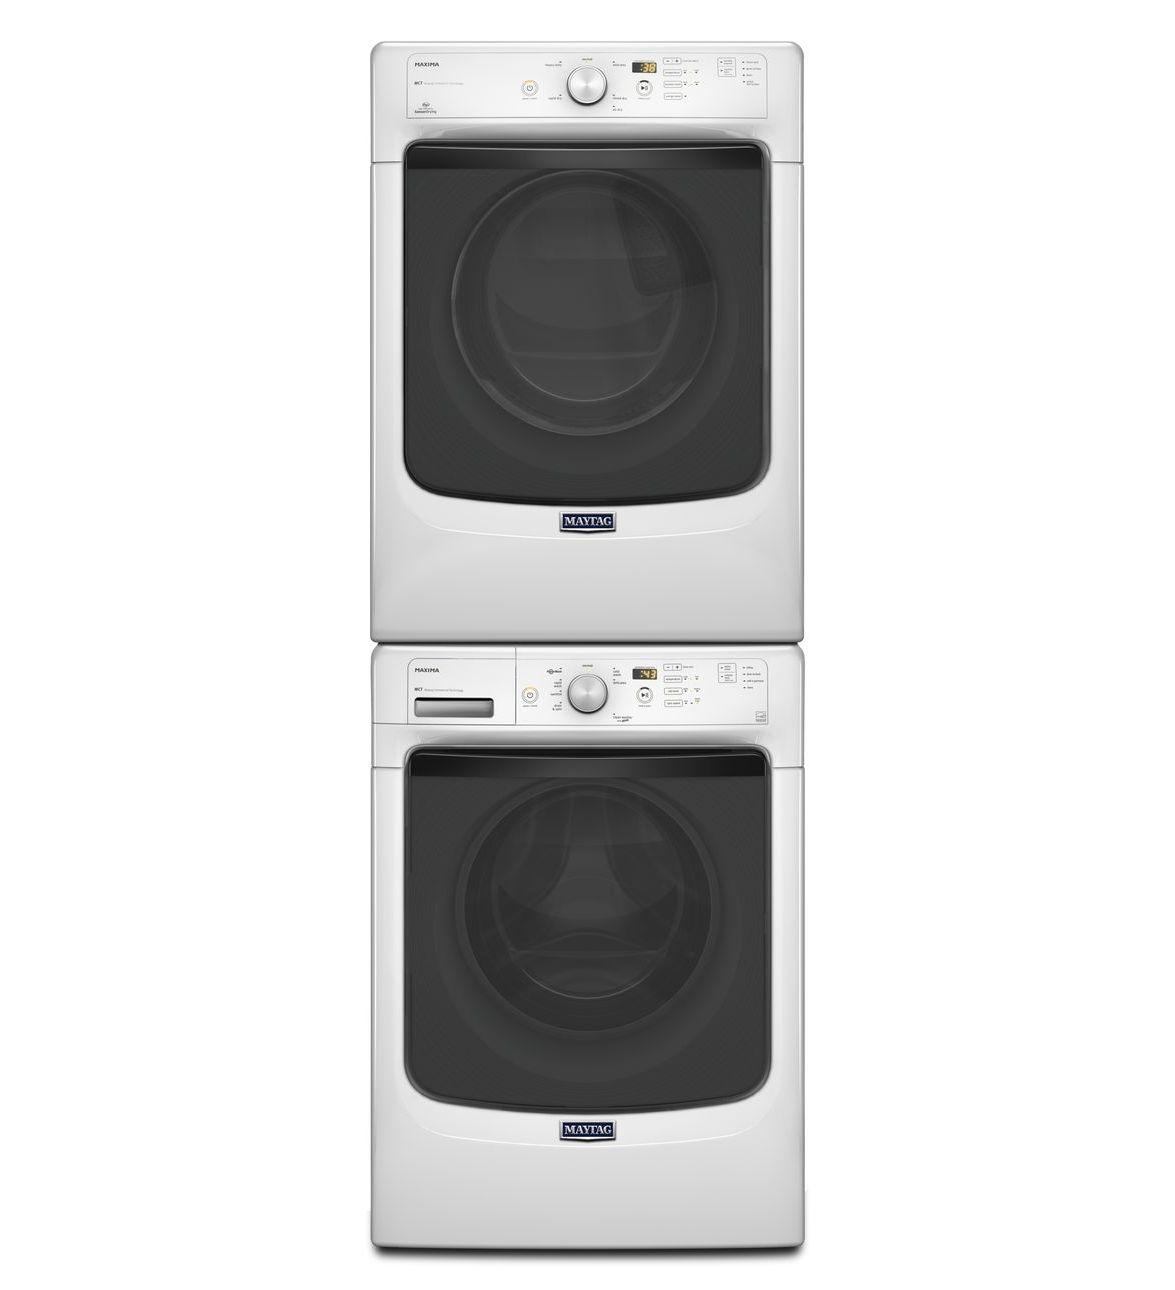 Mhw3100dw Maytag Mhw3100dw Front Load Tumble